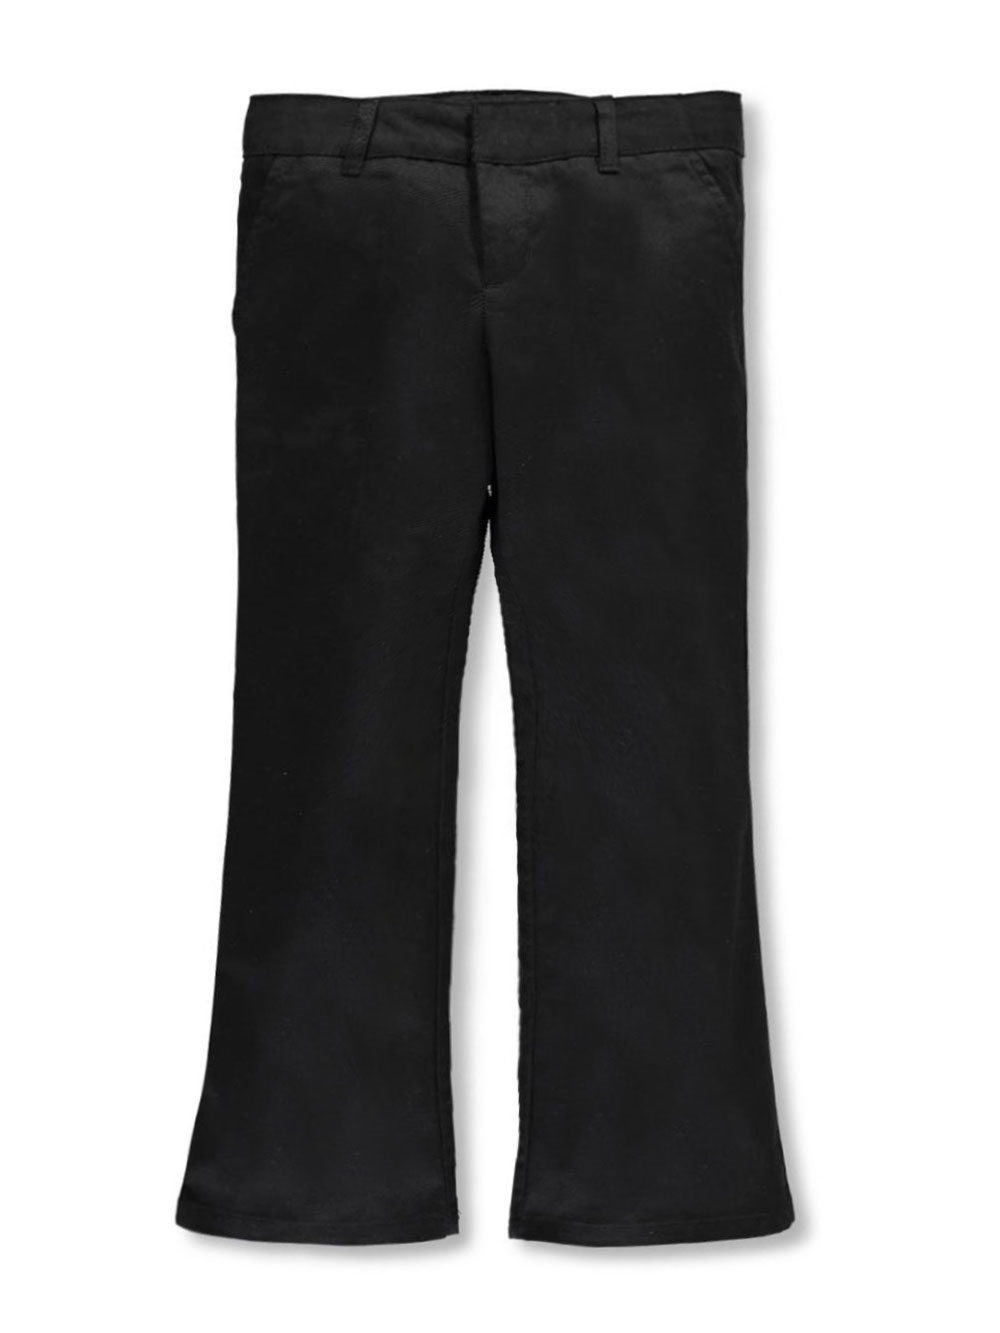 Girls Black and Navy Pants